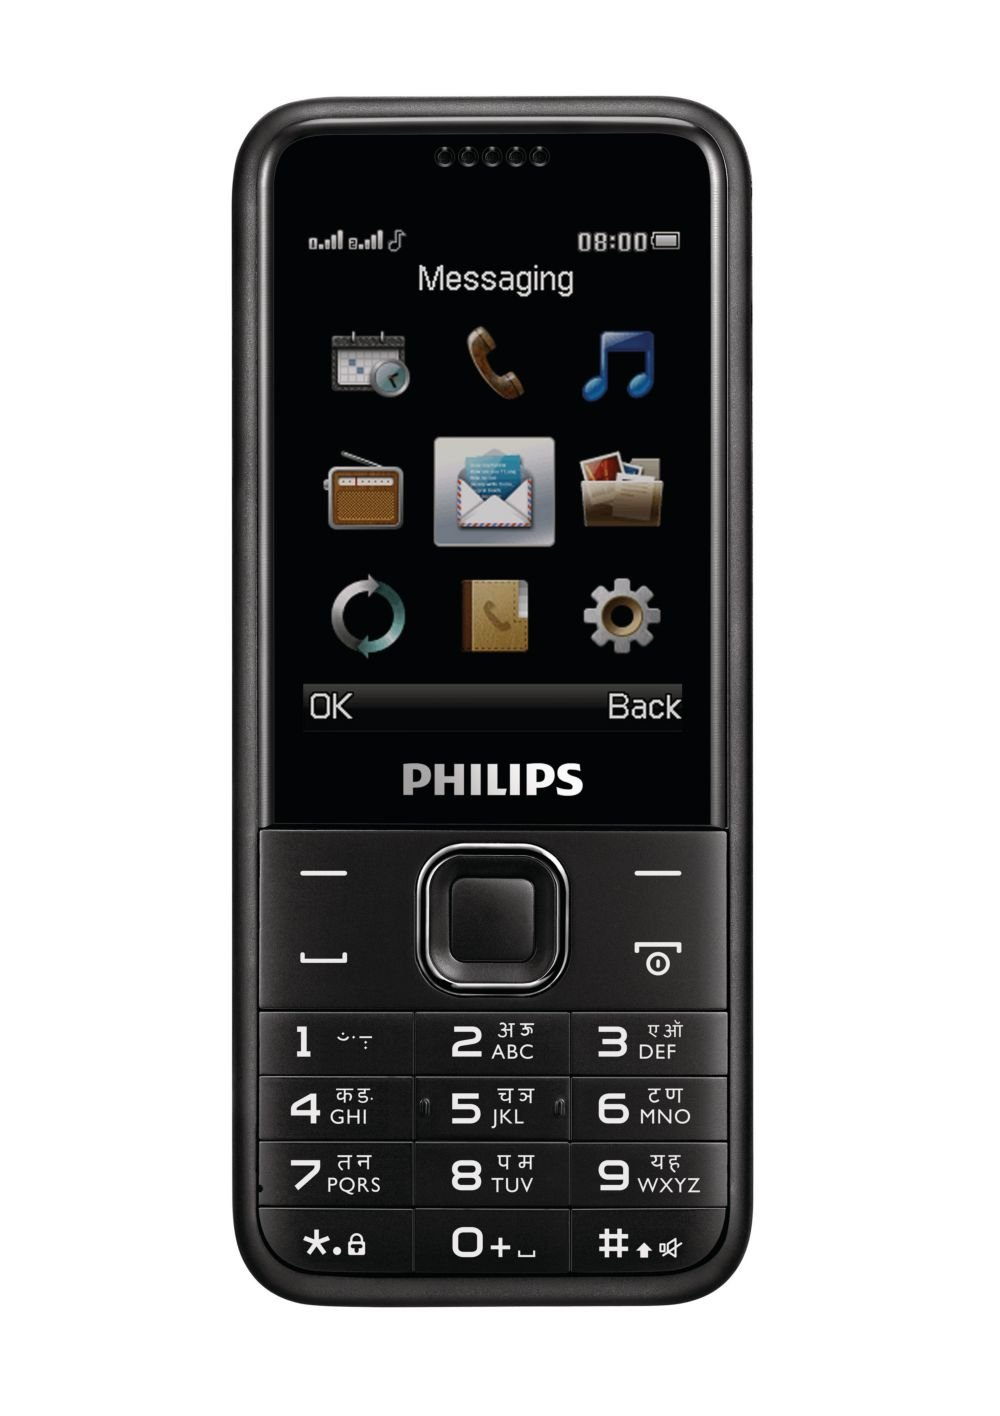 Philips E162 Image